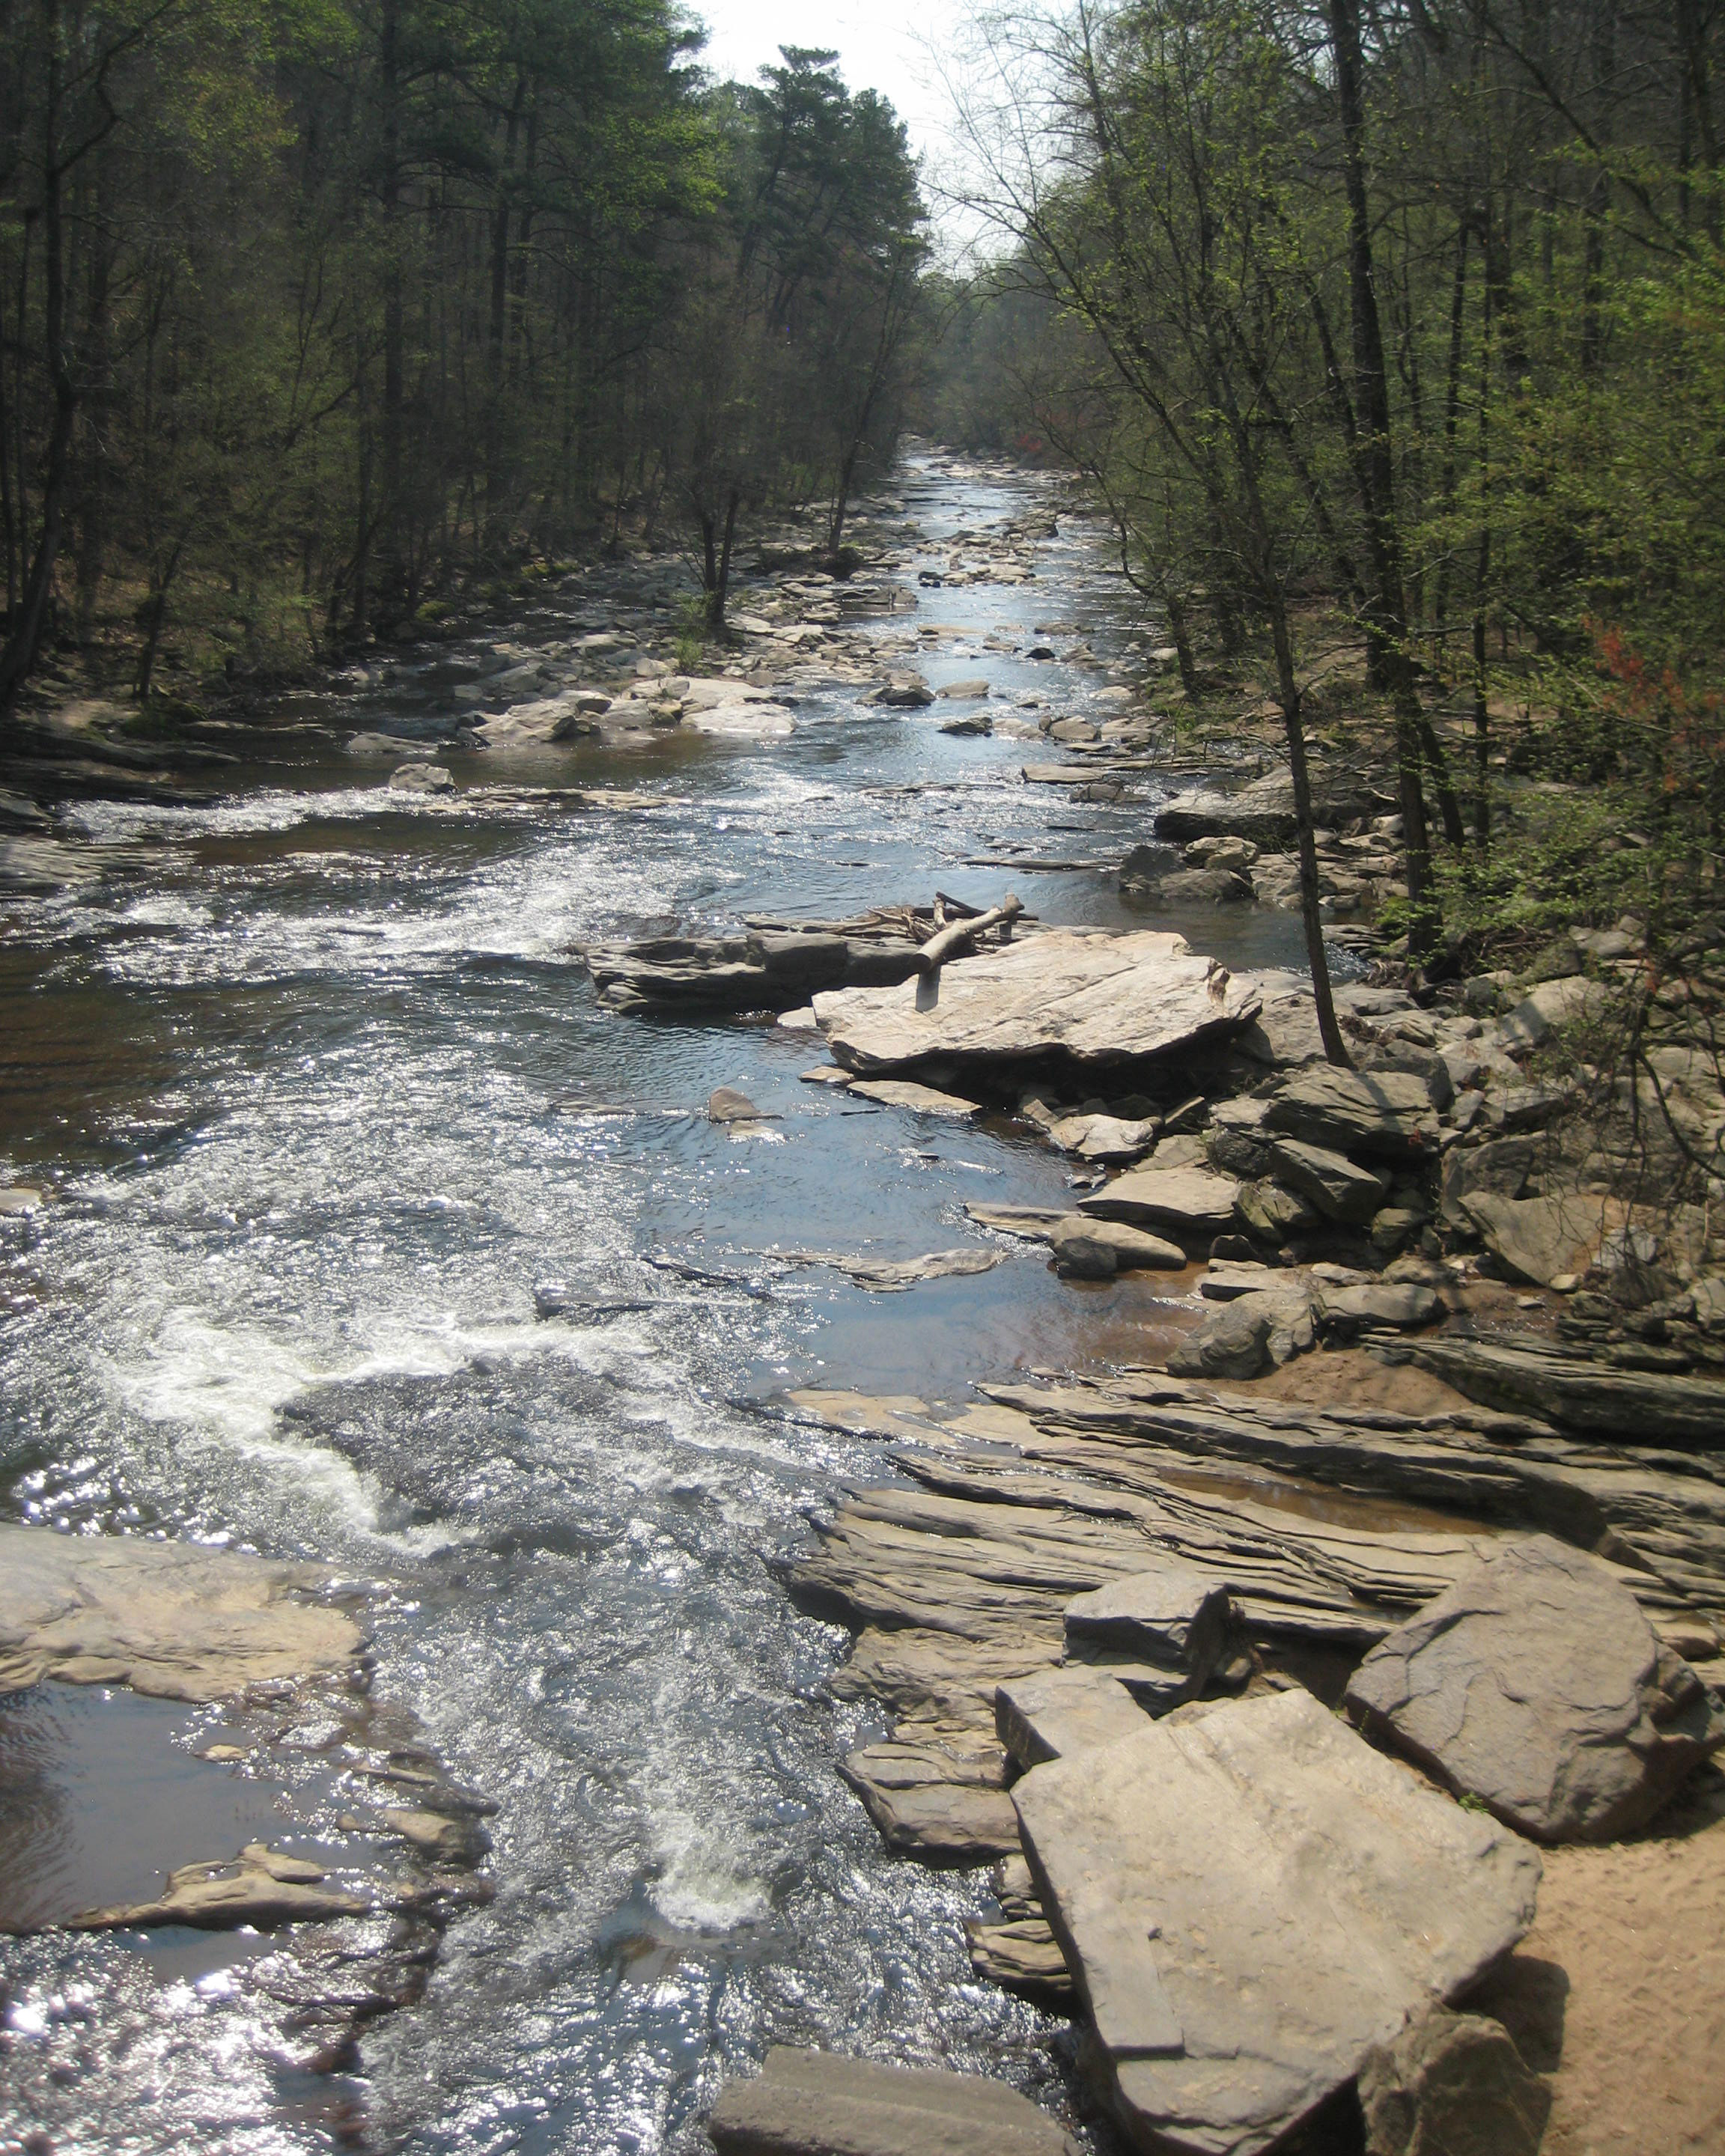 shoals chat sites Complete information about chit chat chaw resort, an outfitter in mountain home arkansas.